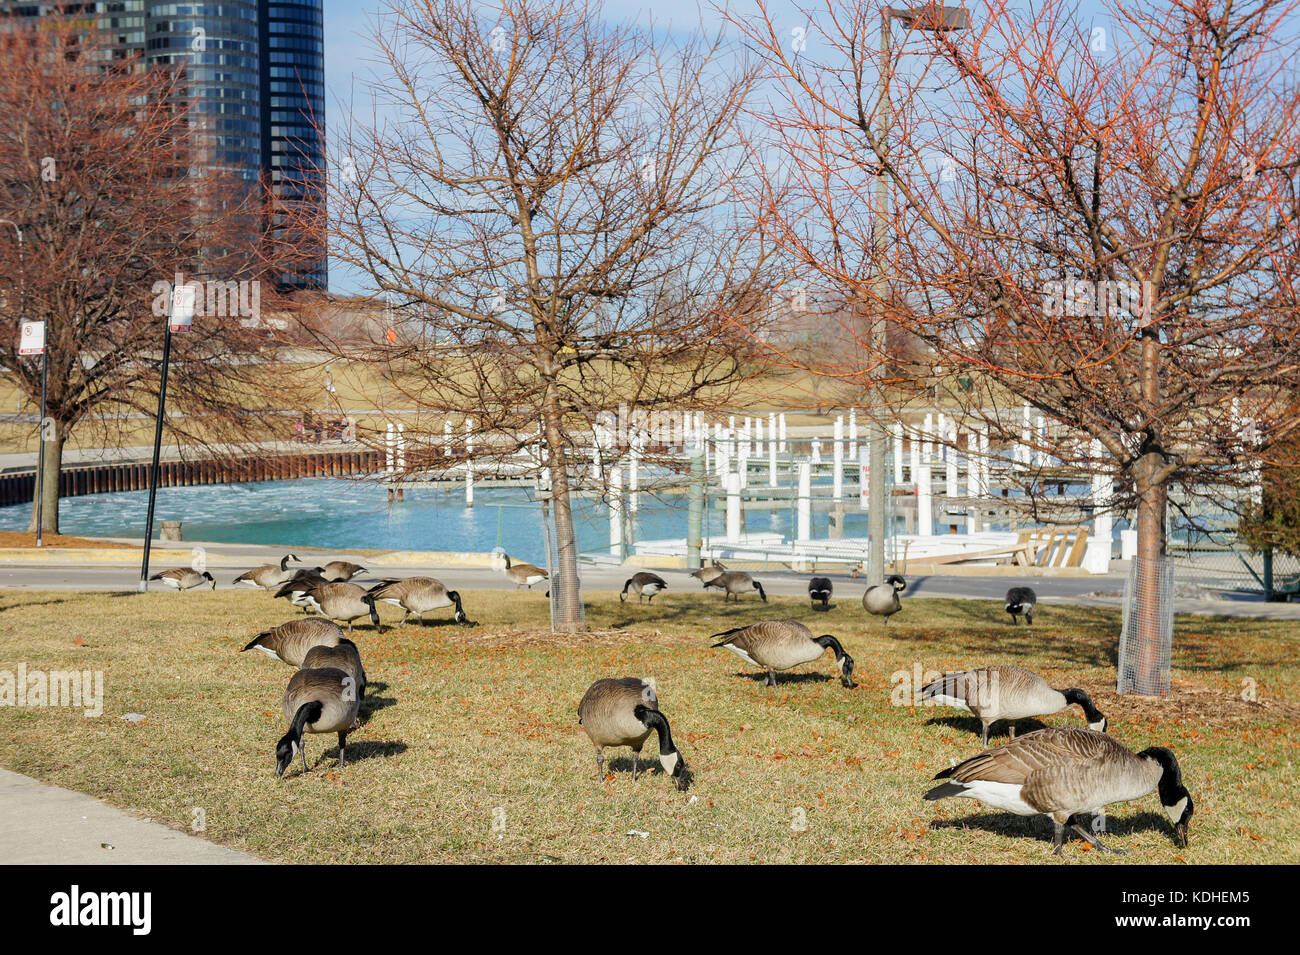 Many Canada geese with Chicago at Millennium Park, Chicago, Illinois, United States - Stock Image